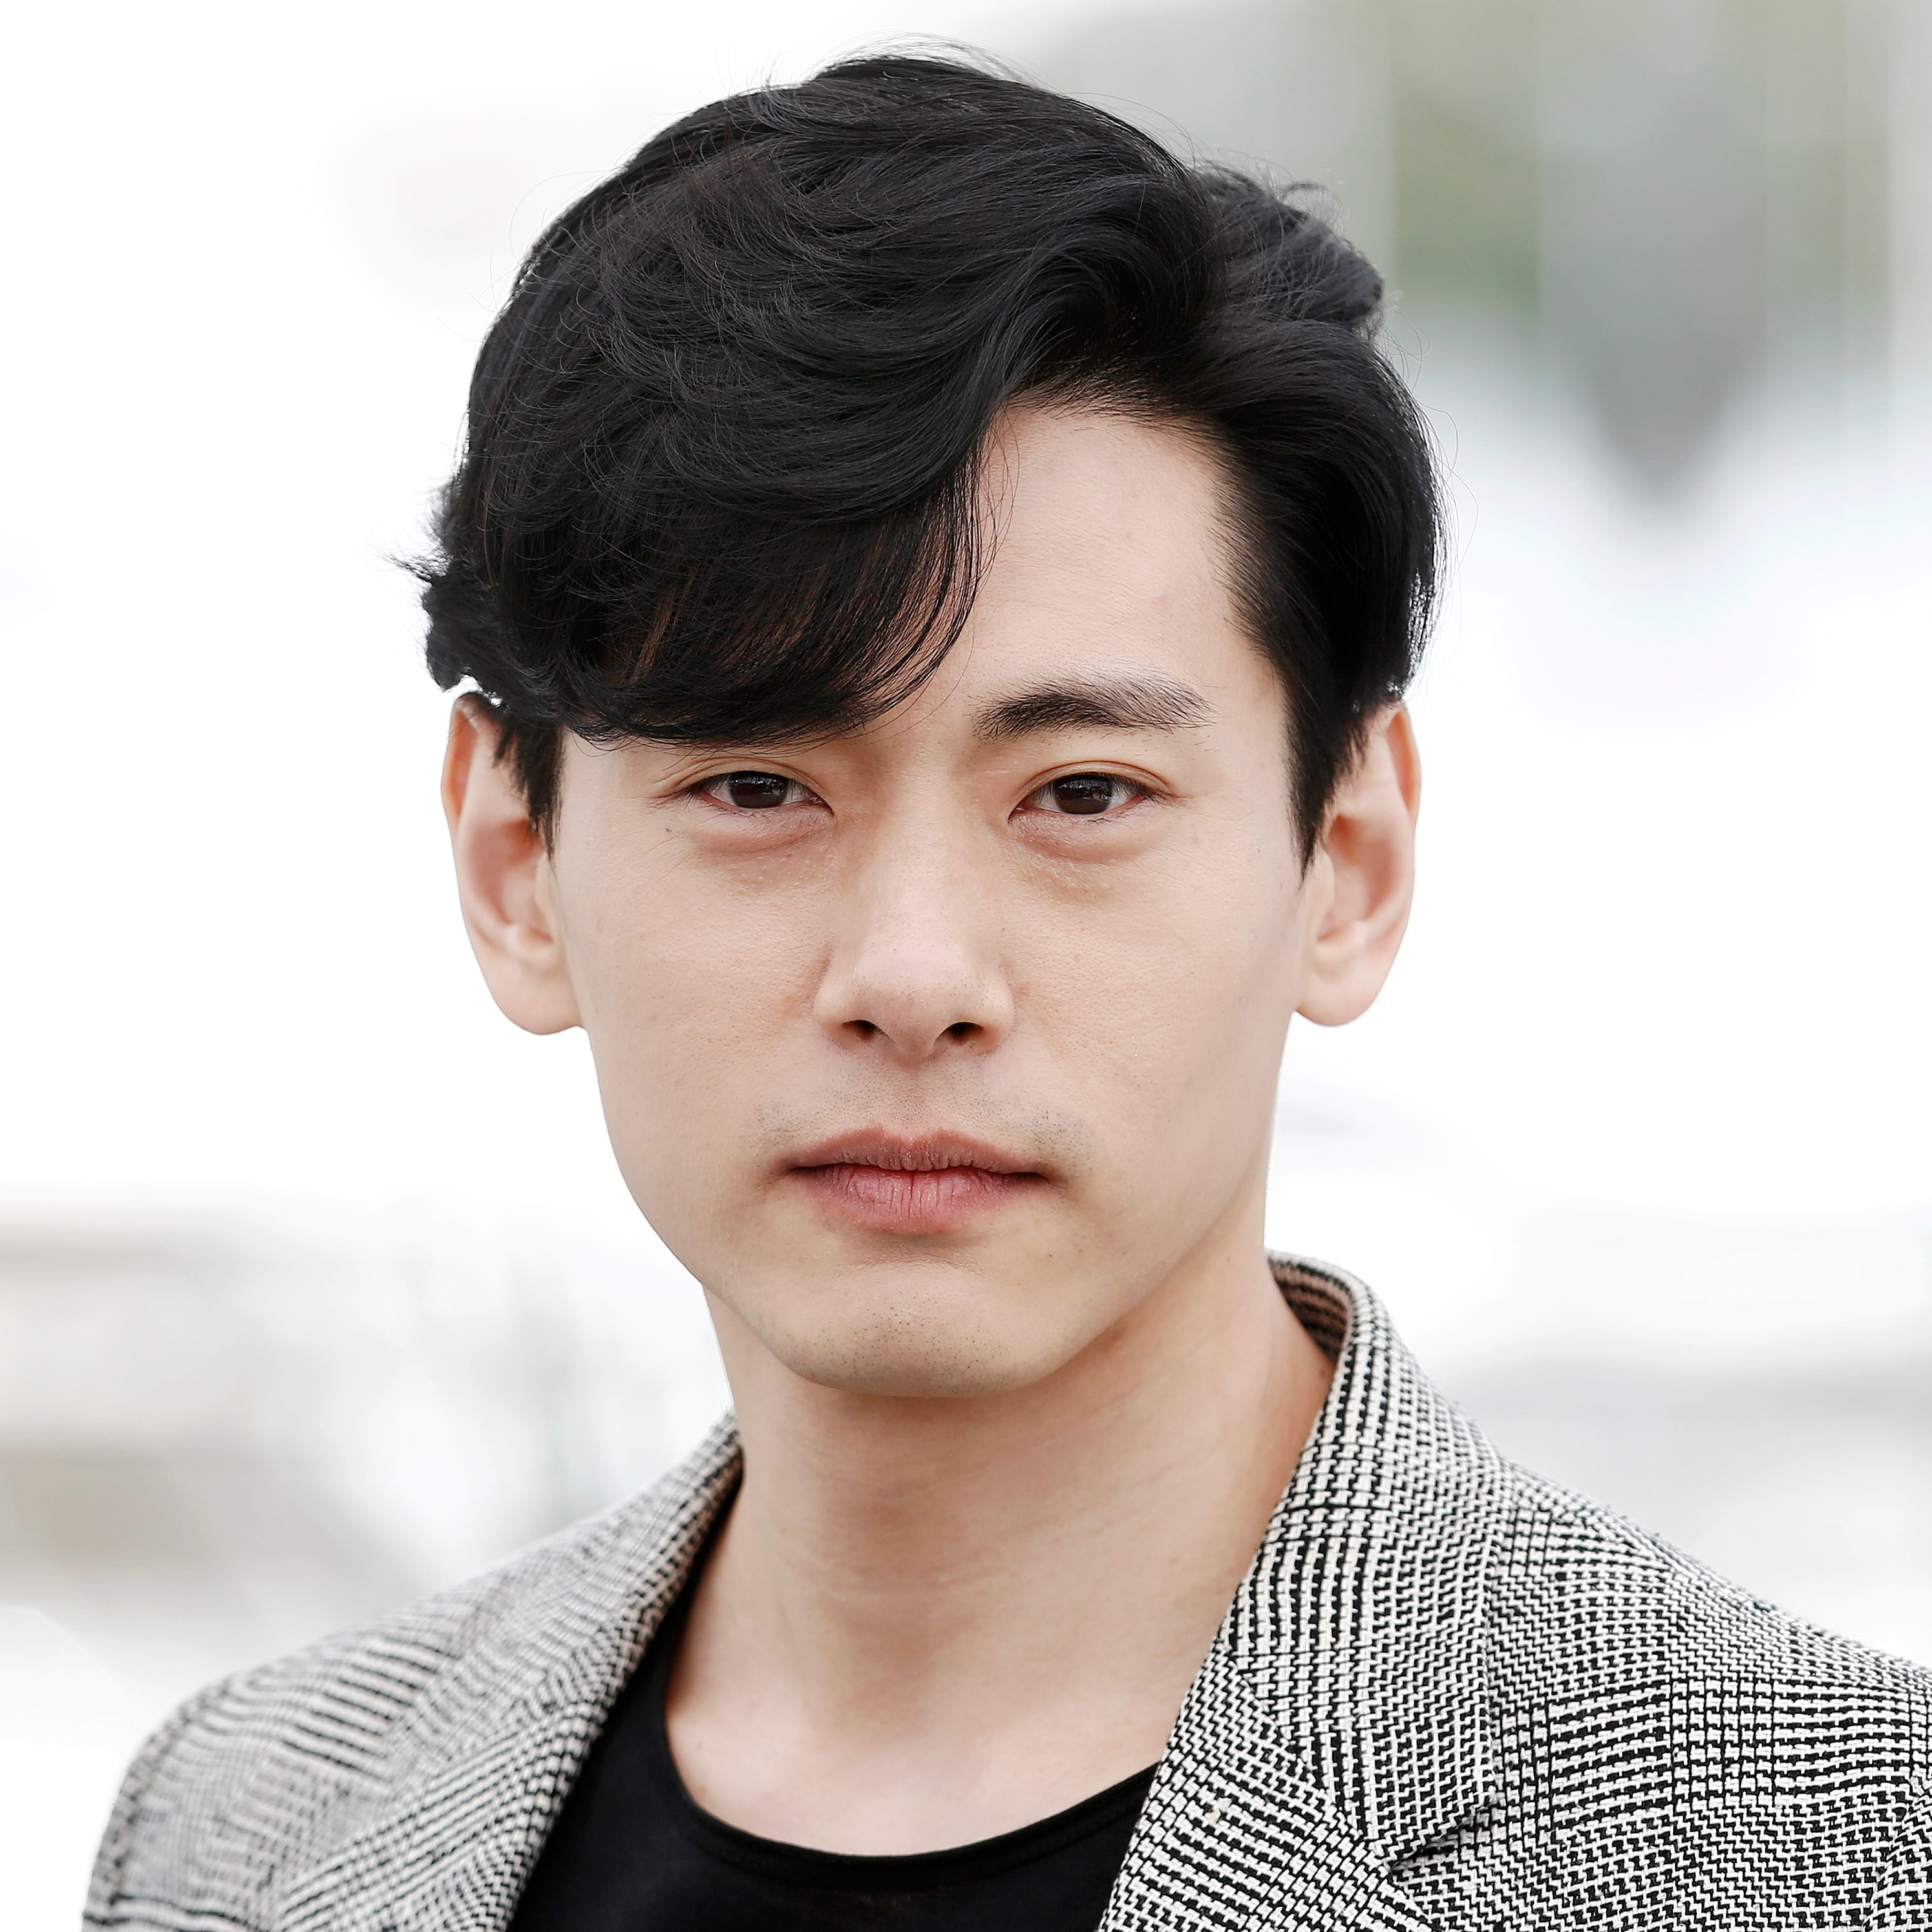 Top 30 Trendy Asian Men Hairstyles 2019 Pertaining To Current Medium Length Bob Asian Hairstyles With Long Bangs (View 19 of 20)